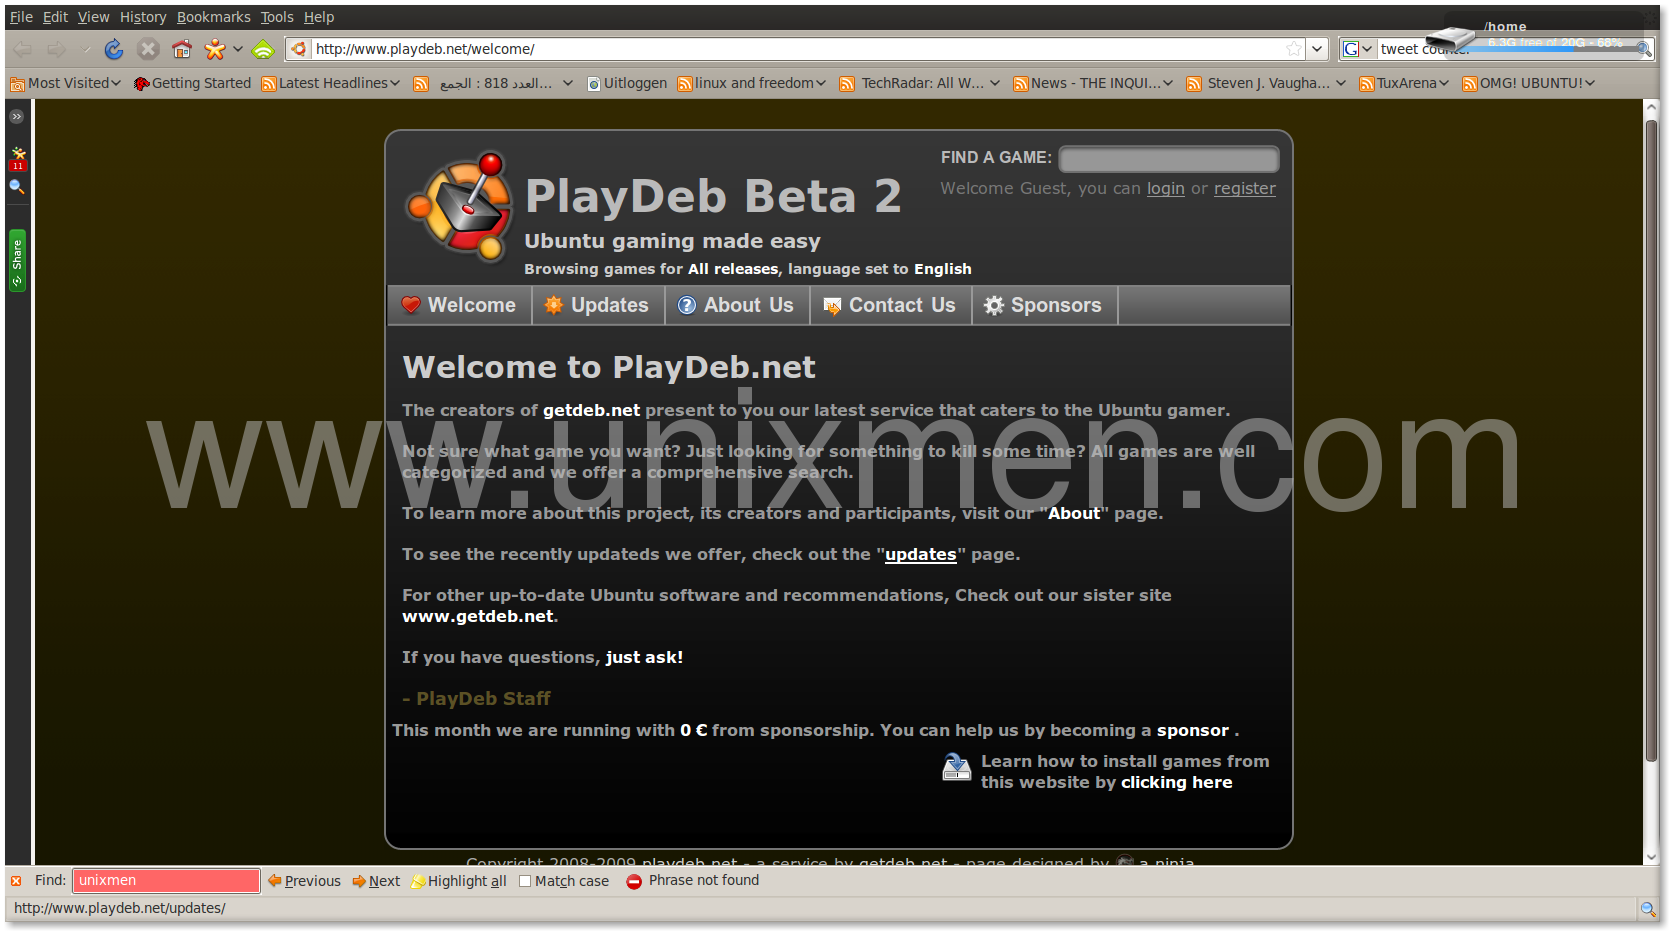 Ubuntu Gaming made easy with PlayDeb